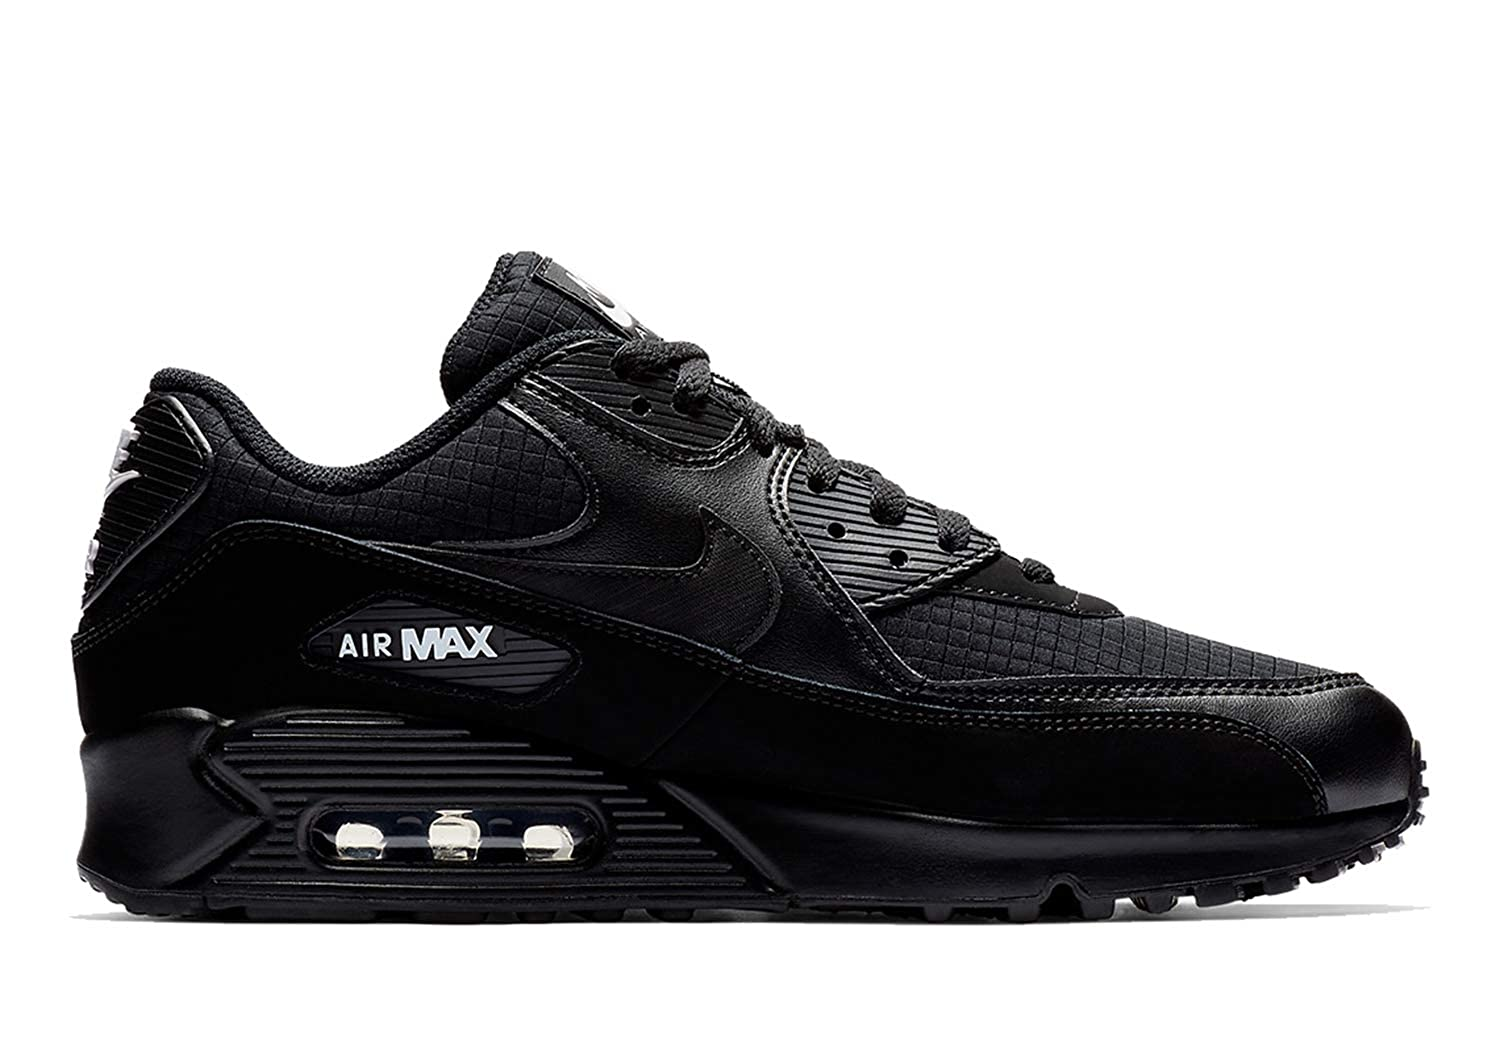 competitive price 820ef d1ba8 Amazon.com   Nike Mens Air Max 90 Essential Running Shoes Black White  AJ1285-019 Size 10.5   Road Running